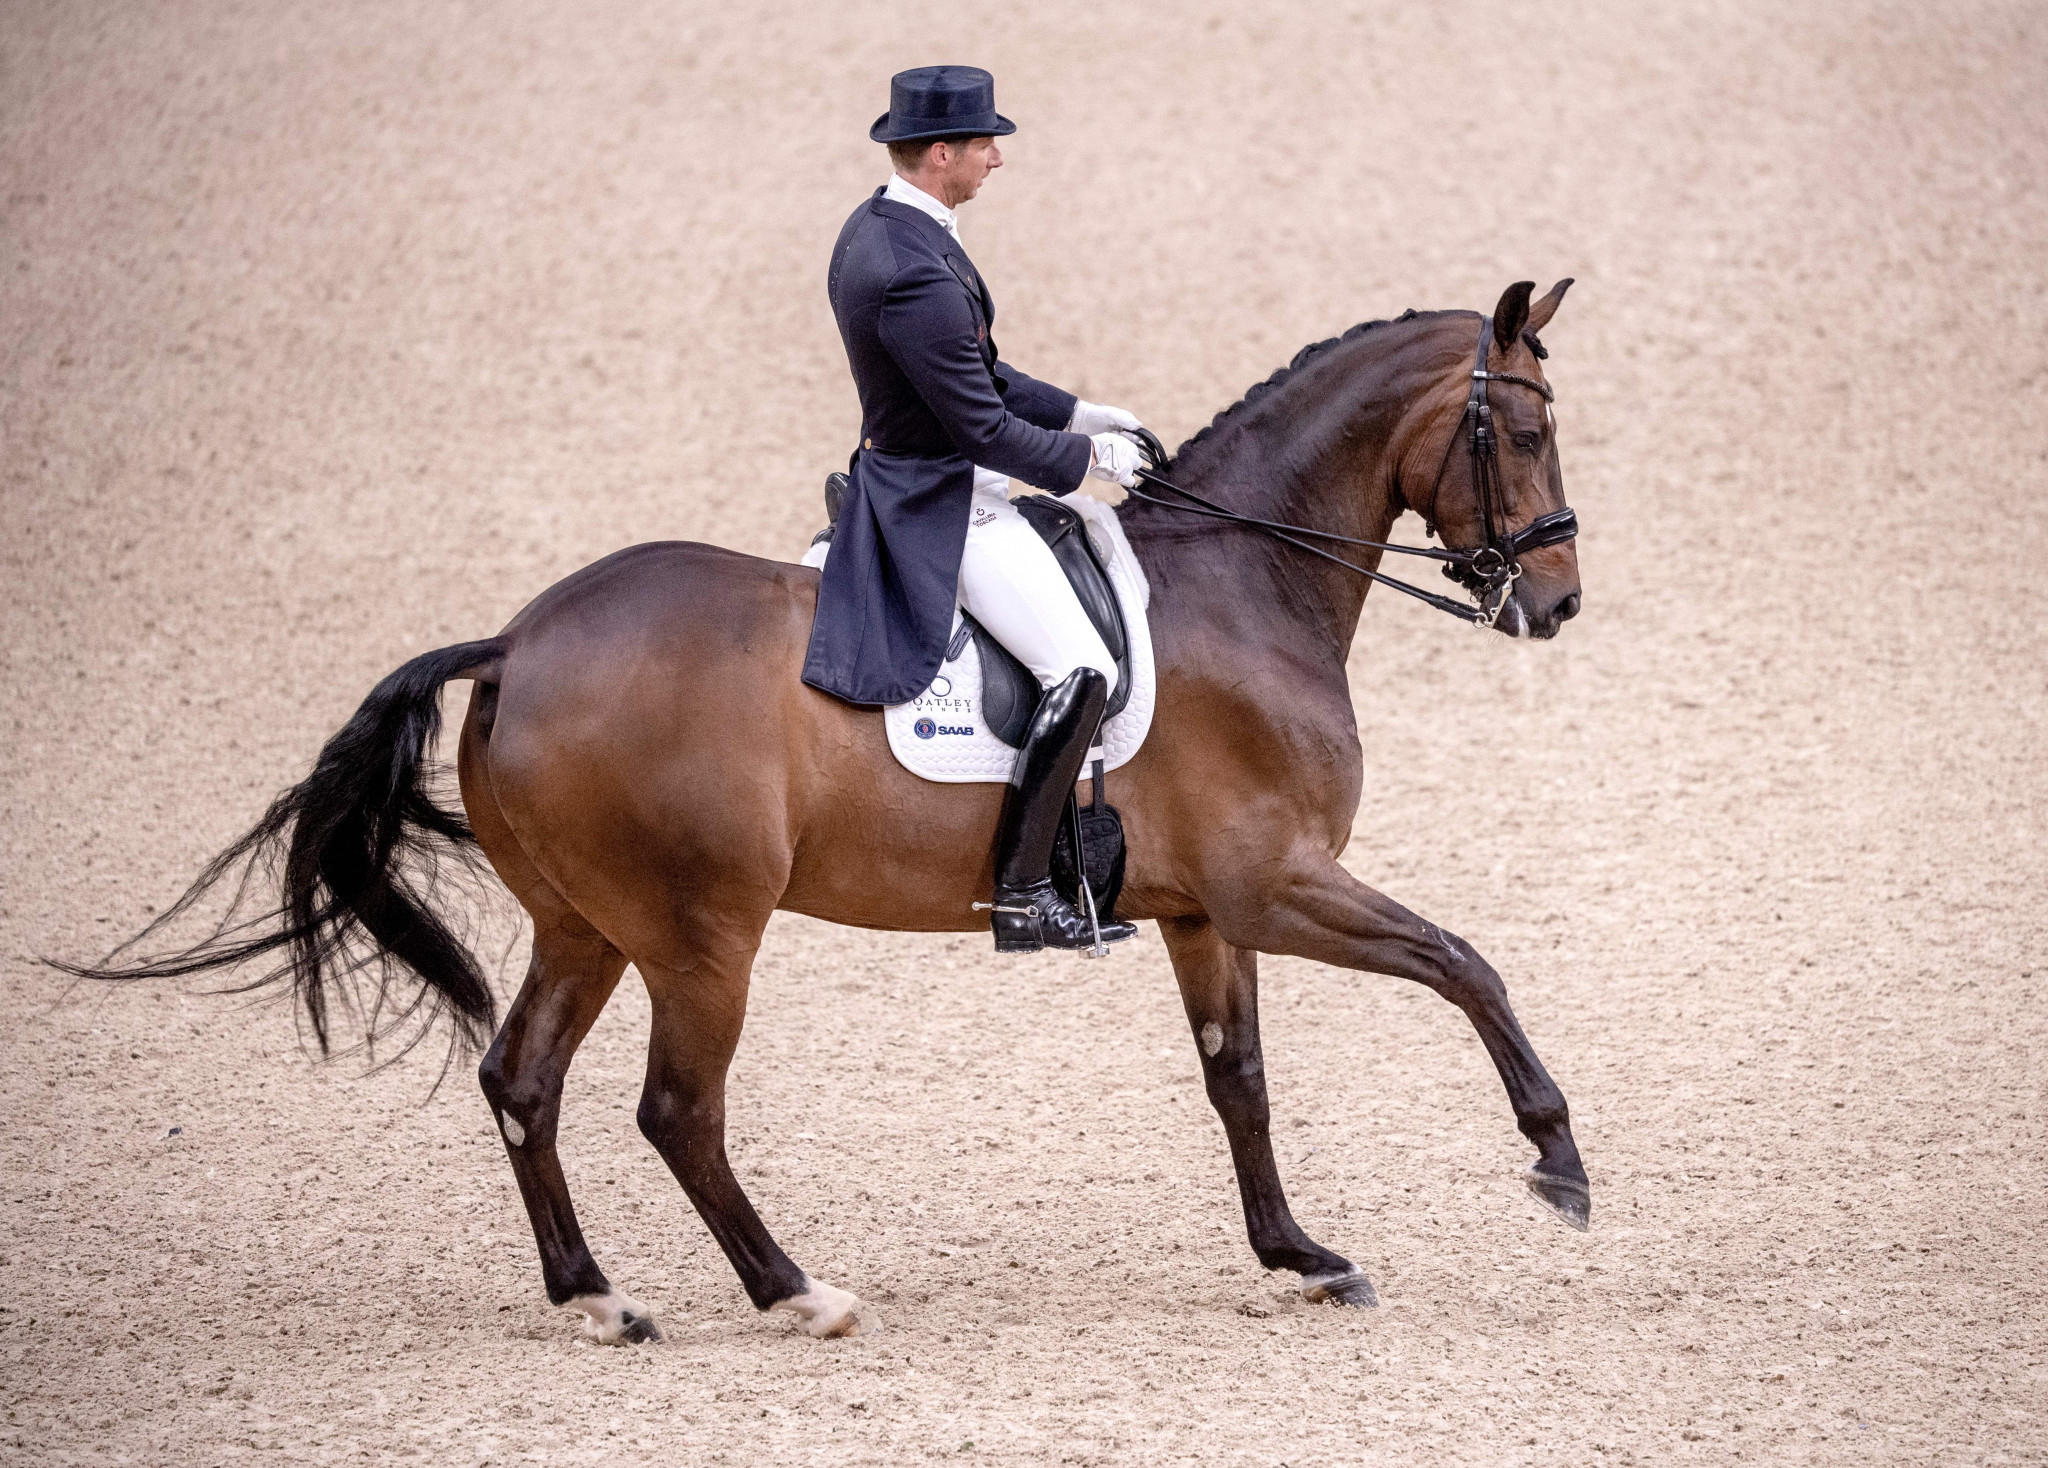 Sweden triumph on home soil at FEI Dressage Nations Cup